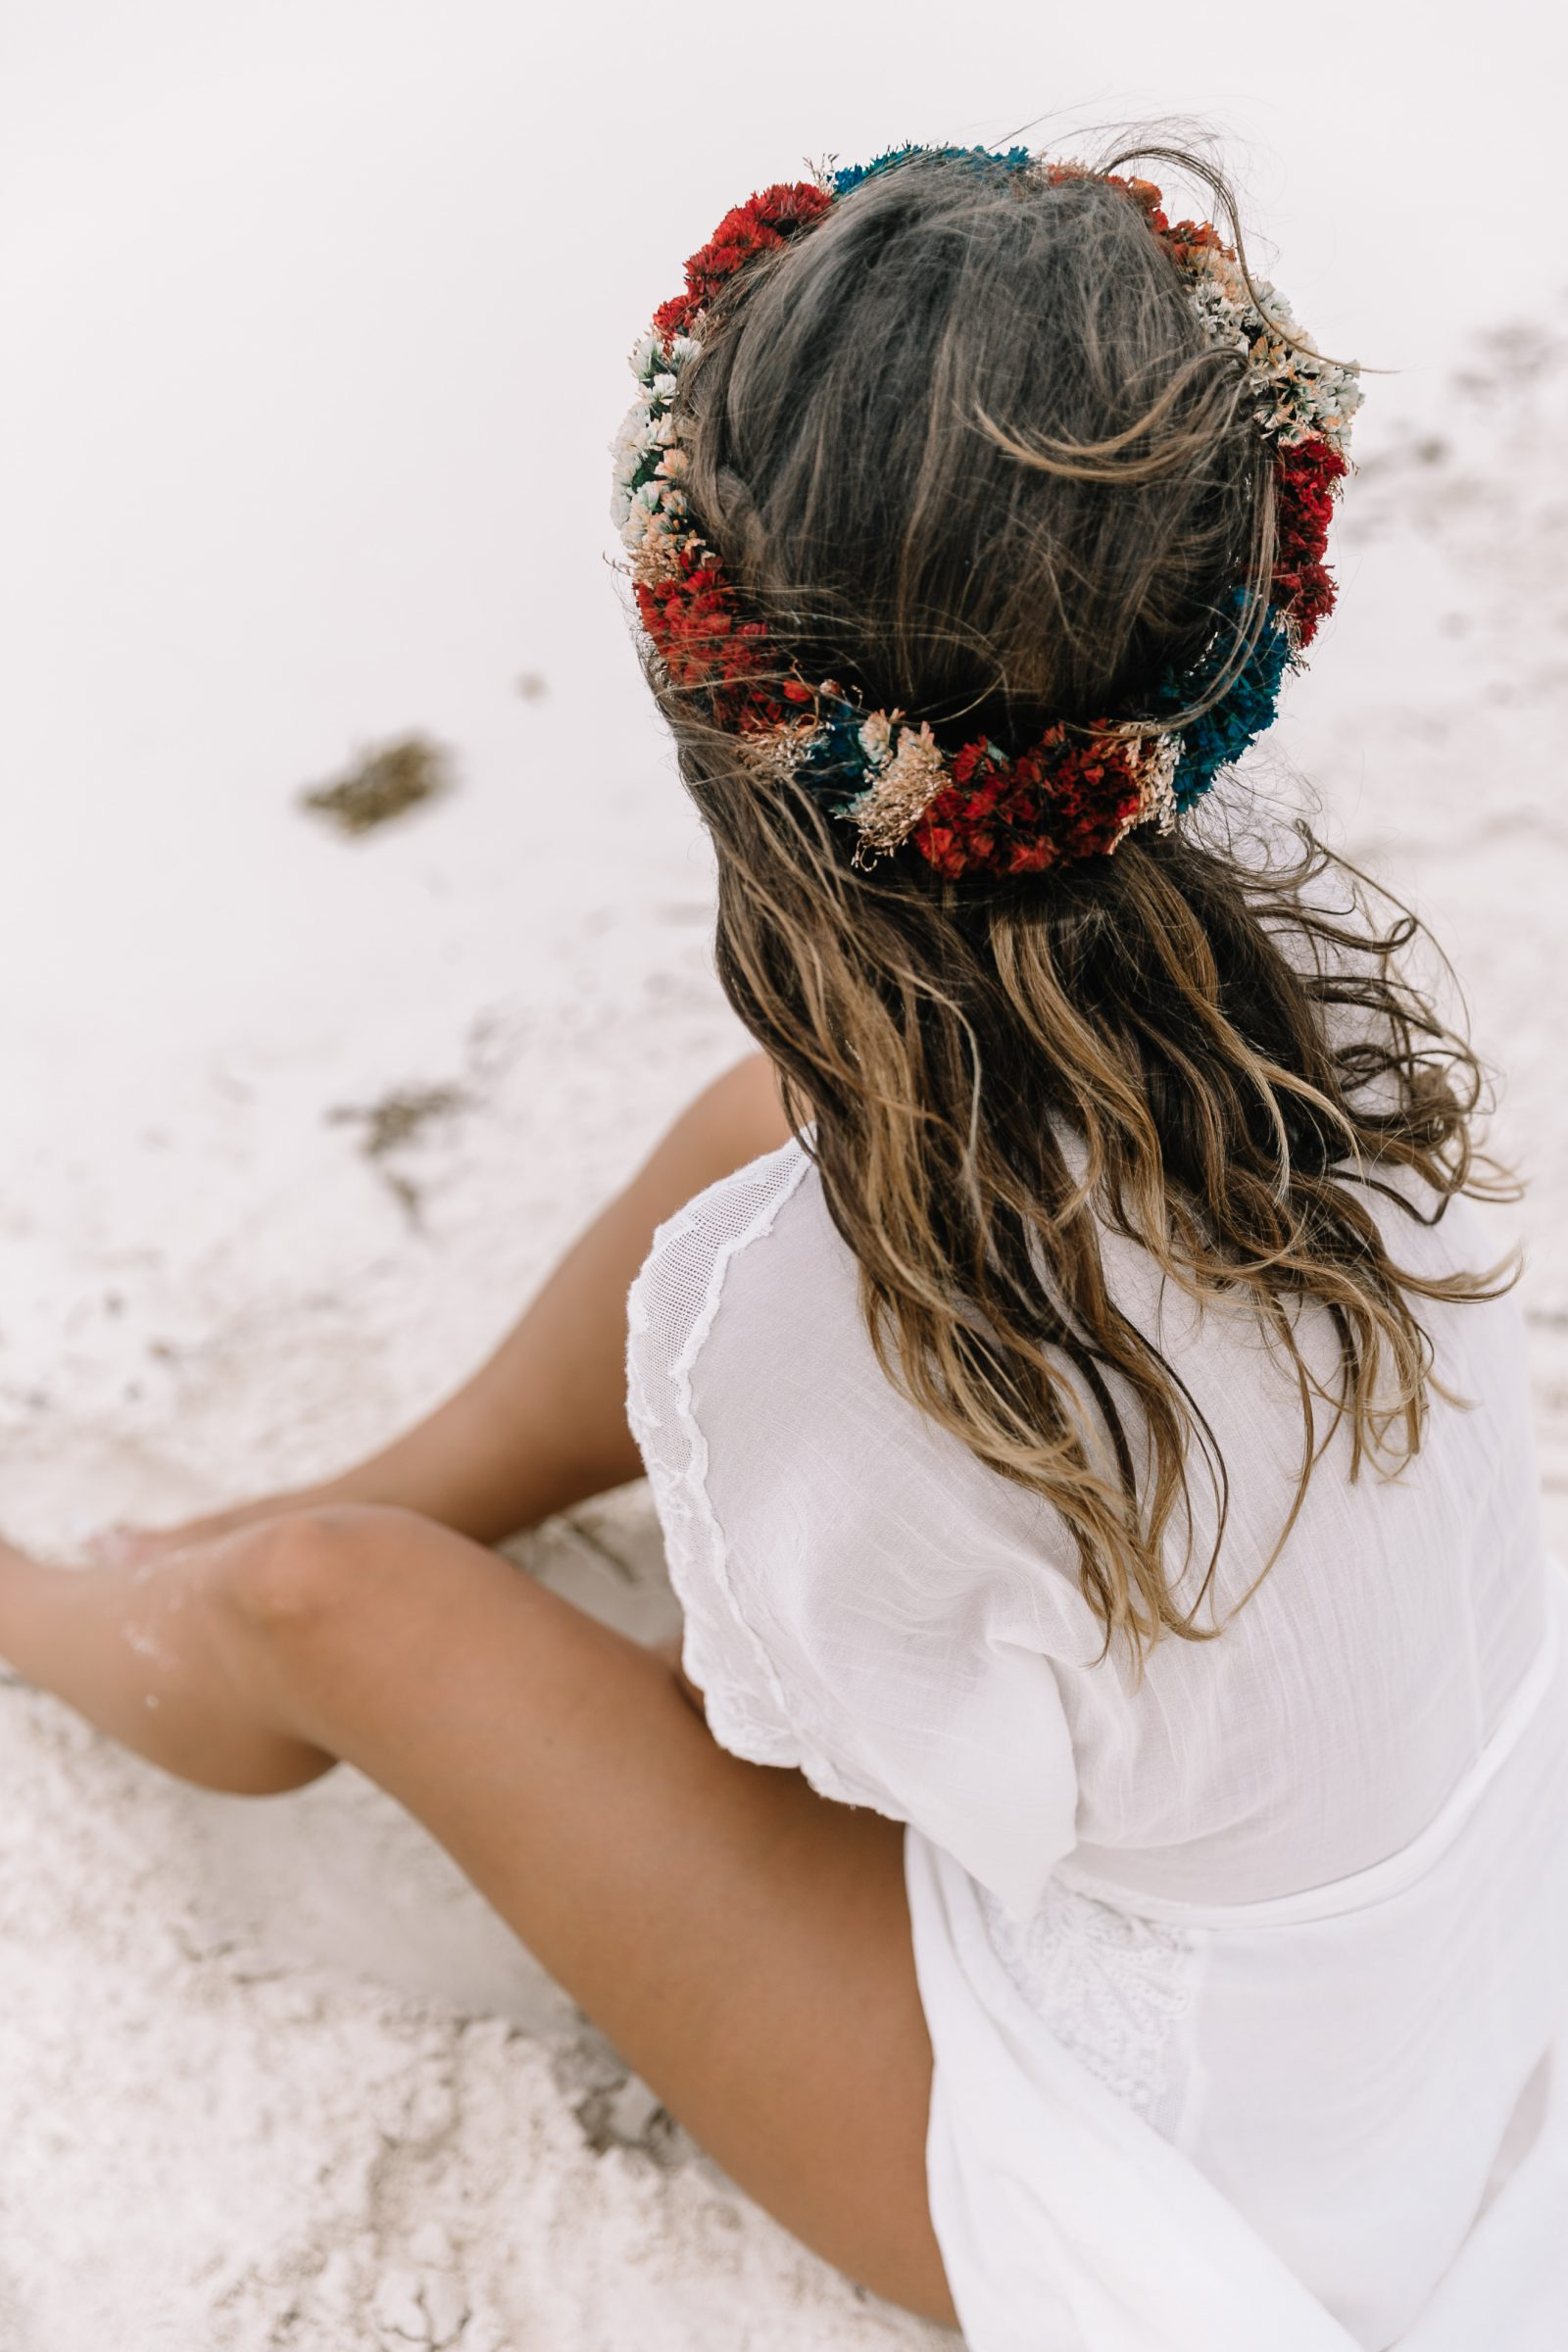 white_long_dress-boho_style-tulum_mexico-beach-floral_crown-outfit-collage_vintage-48